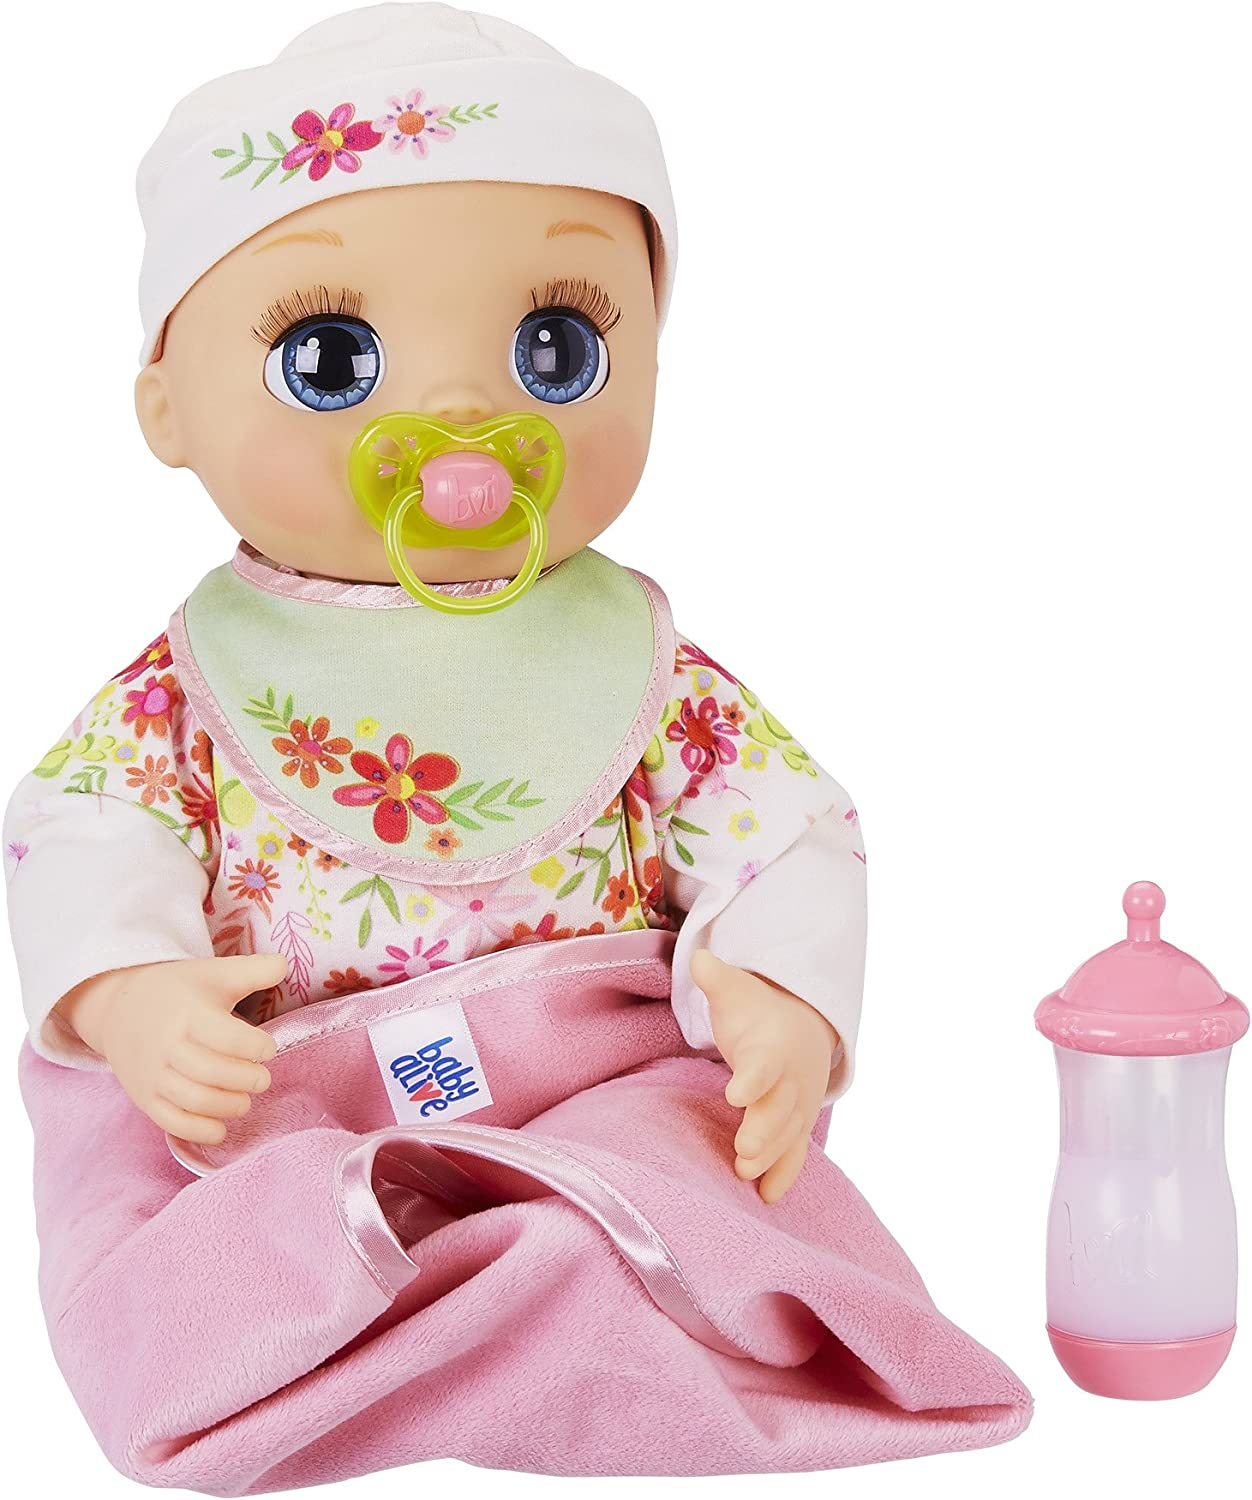 Amazon Com Baby Alive Real As Can Be Baby Realistic Blonde Baby Doll 80 Lifelike Expressions Movements Real Baby Sounds With Doll Accessories Toy For Girls And Boys 3 And Up Toys